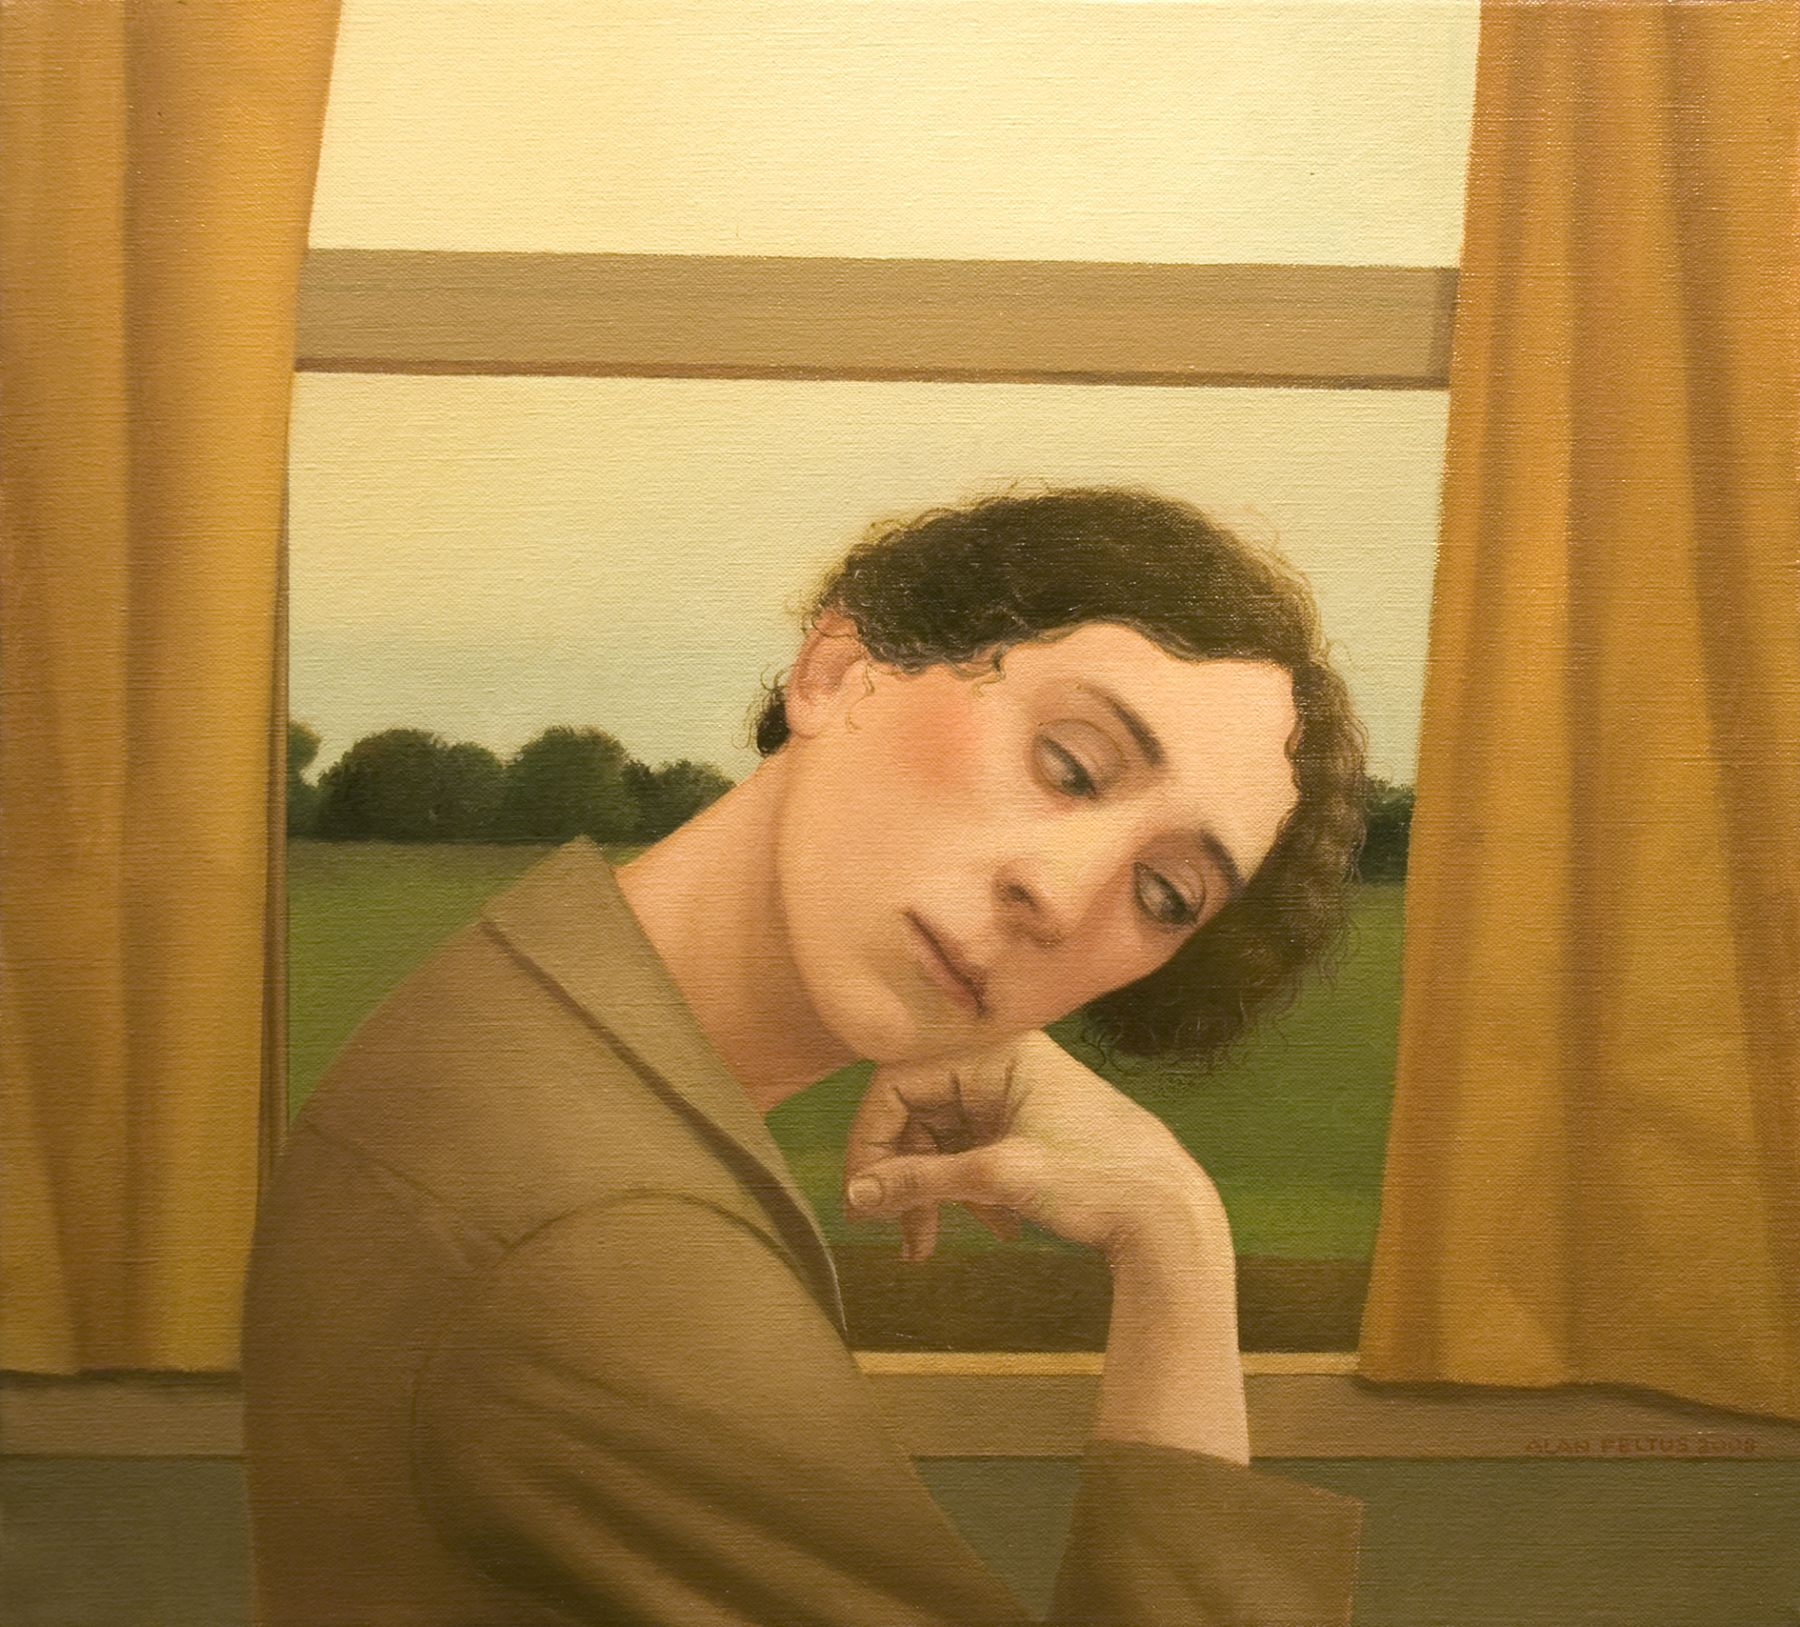 alan feltus, Traveller, 2008, oil on canvas, 20 x 22 inches